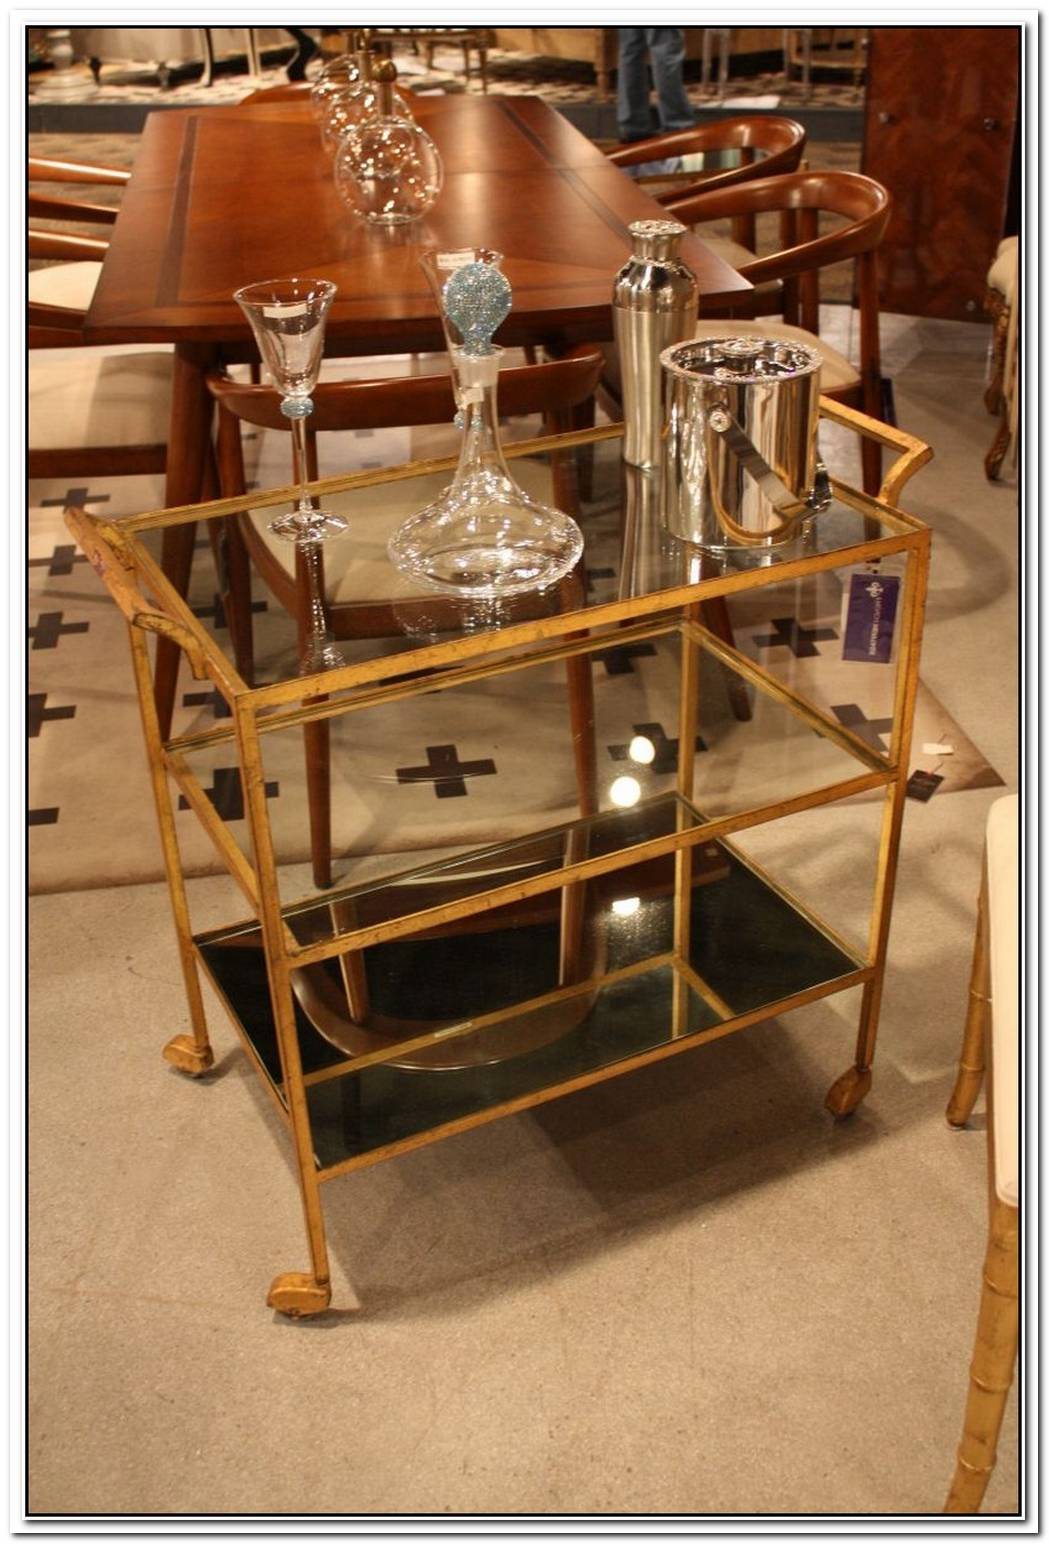 Glamorous Bar Carts Evoke The Past While Staying Modern